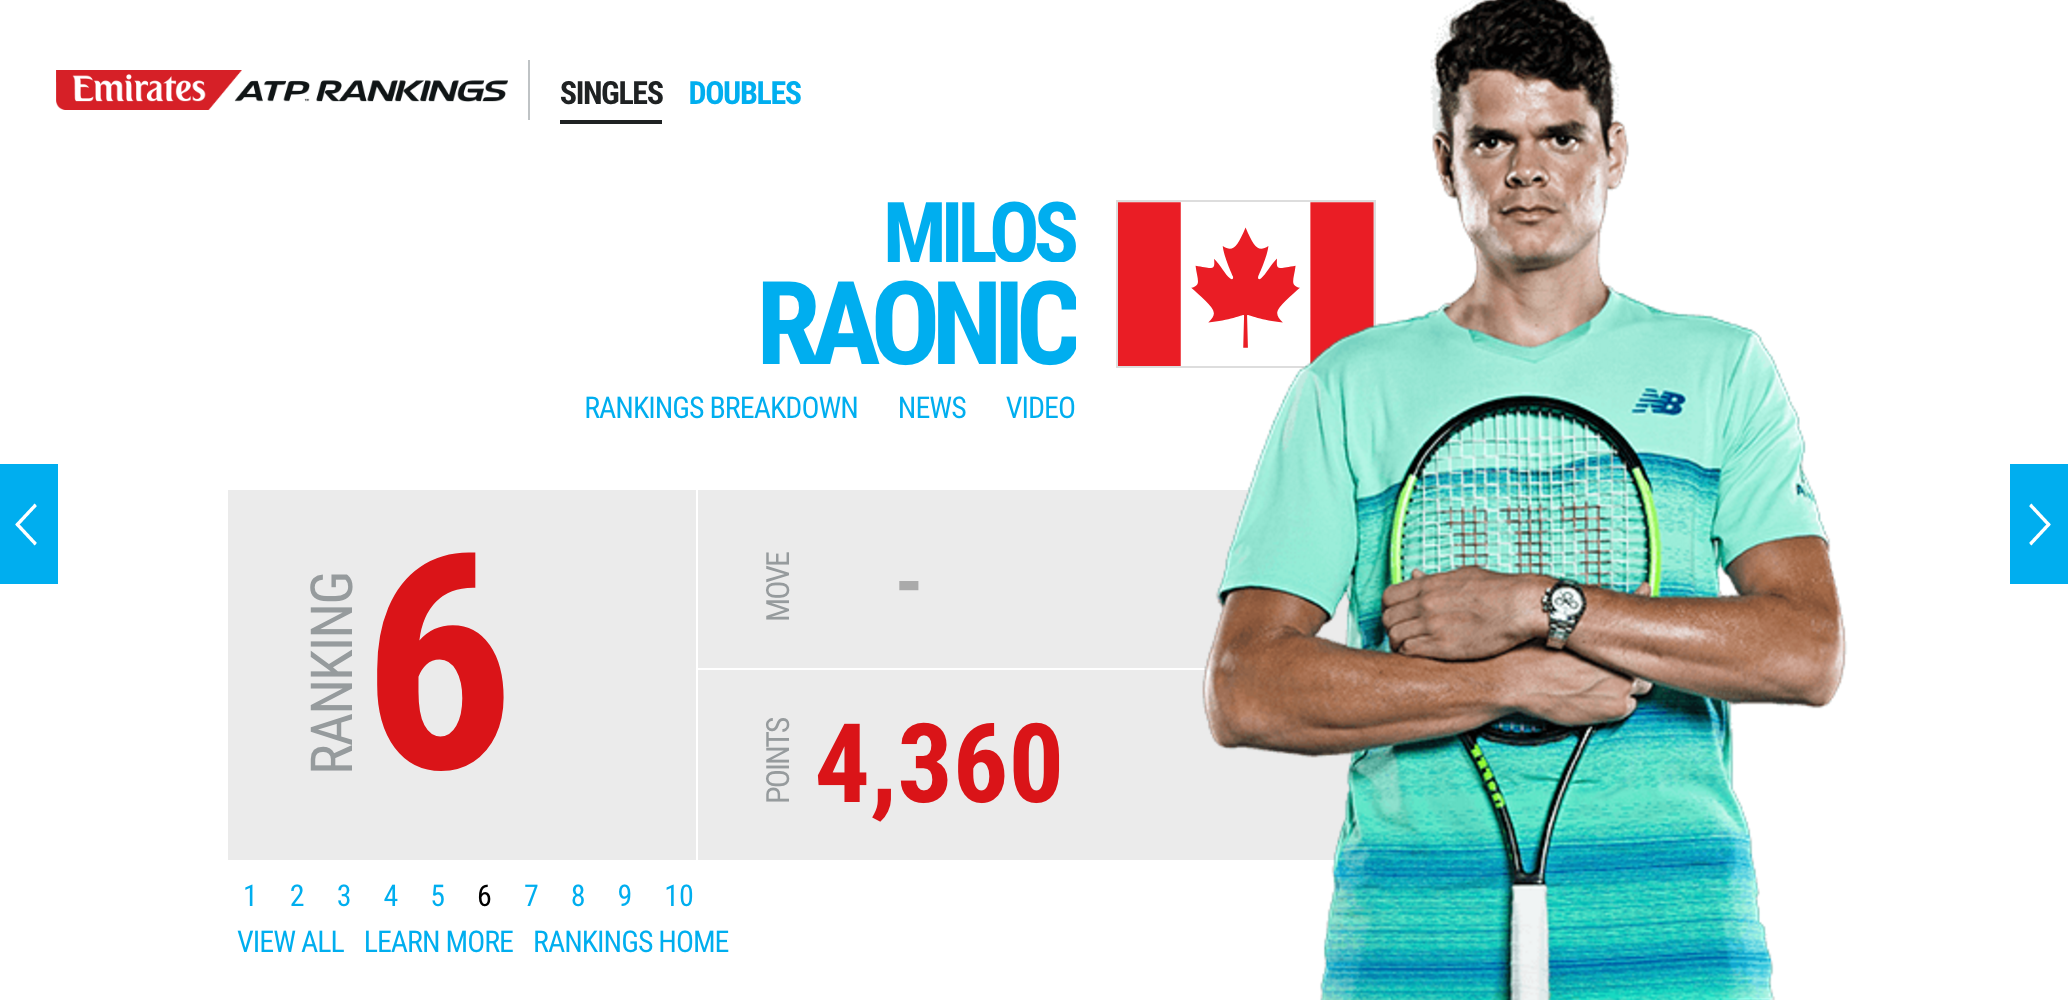 Milos Raonic ATP Ranking Before the French Open 2017